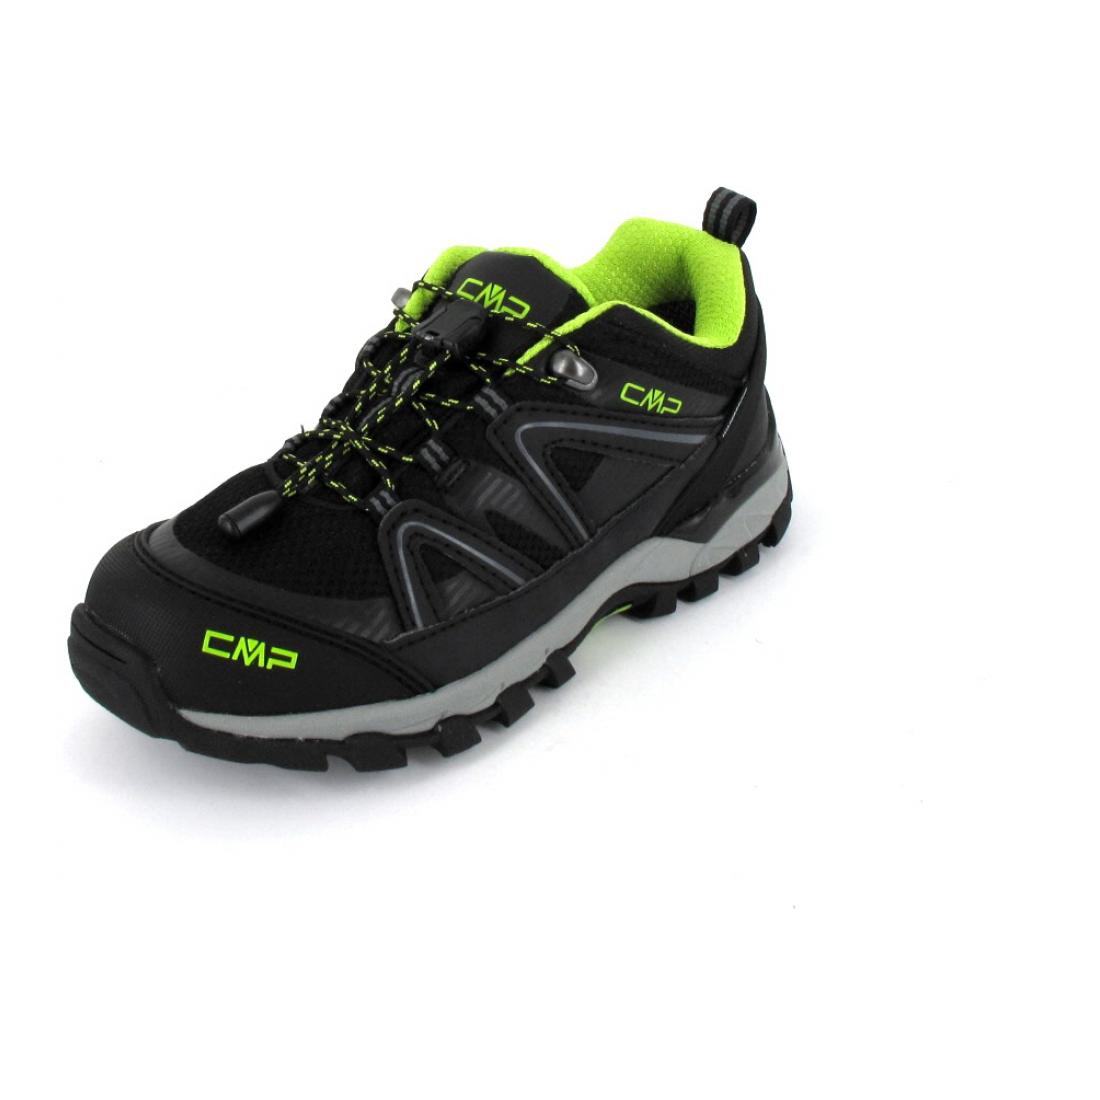 CMP Trekkingschuh Kids Shedir Low Hiking Sh